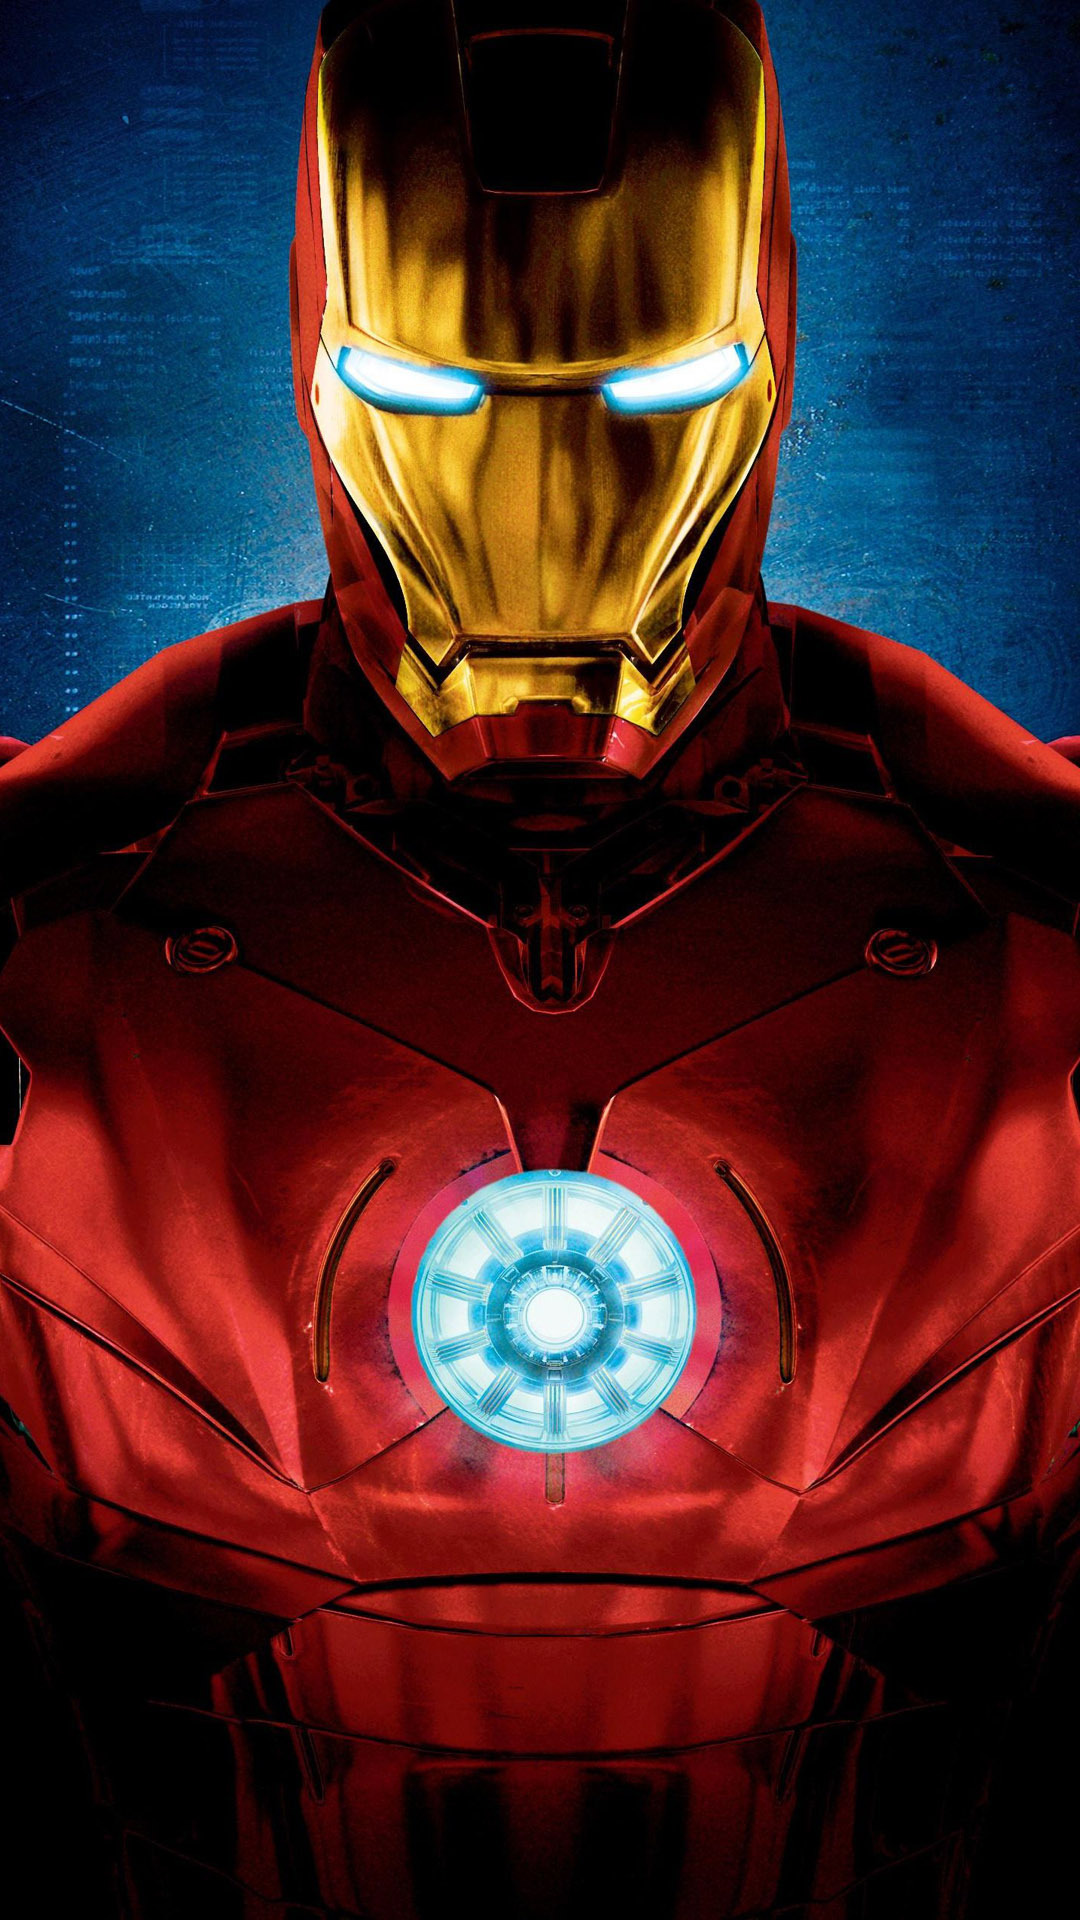 iron man suit - best htc one m9 wallpapers free download